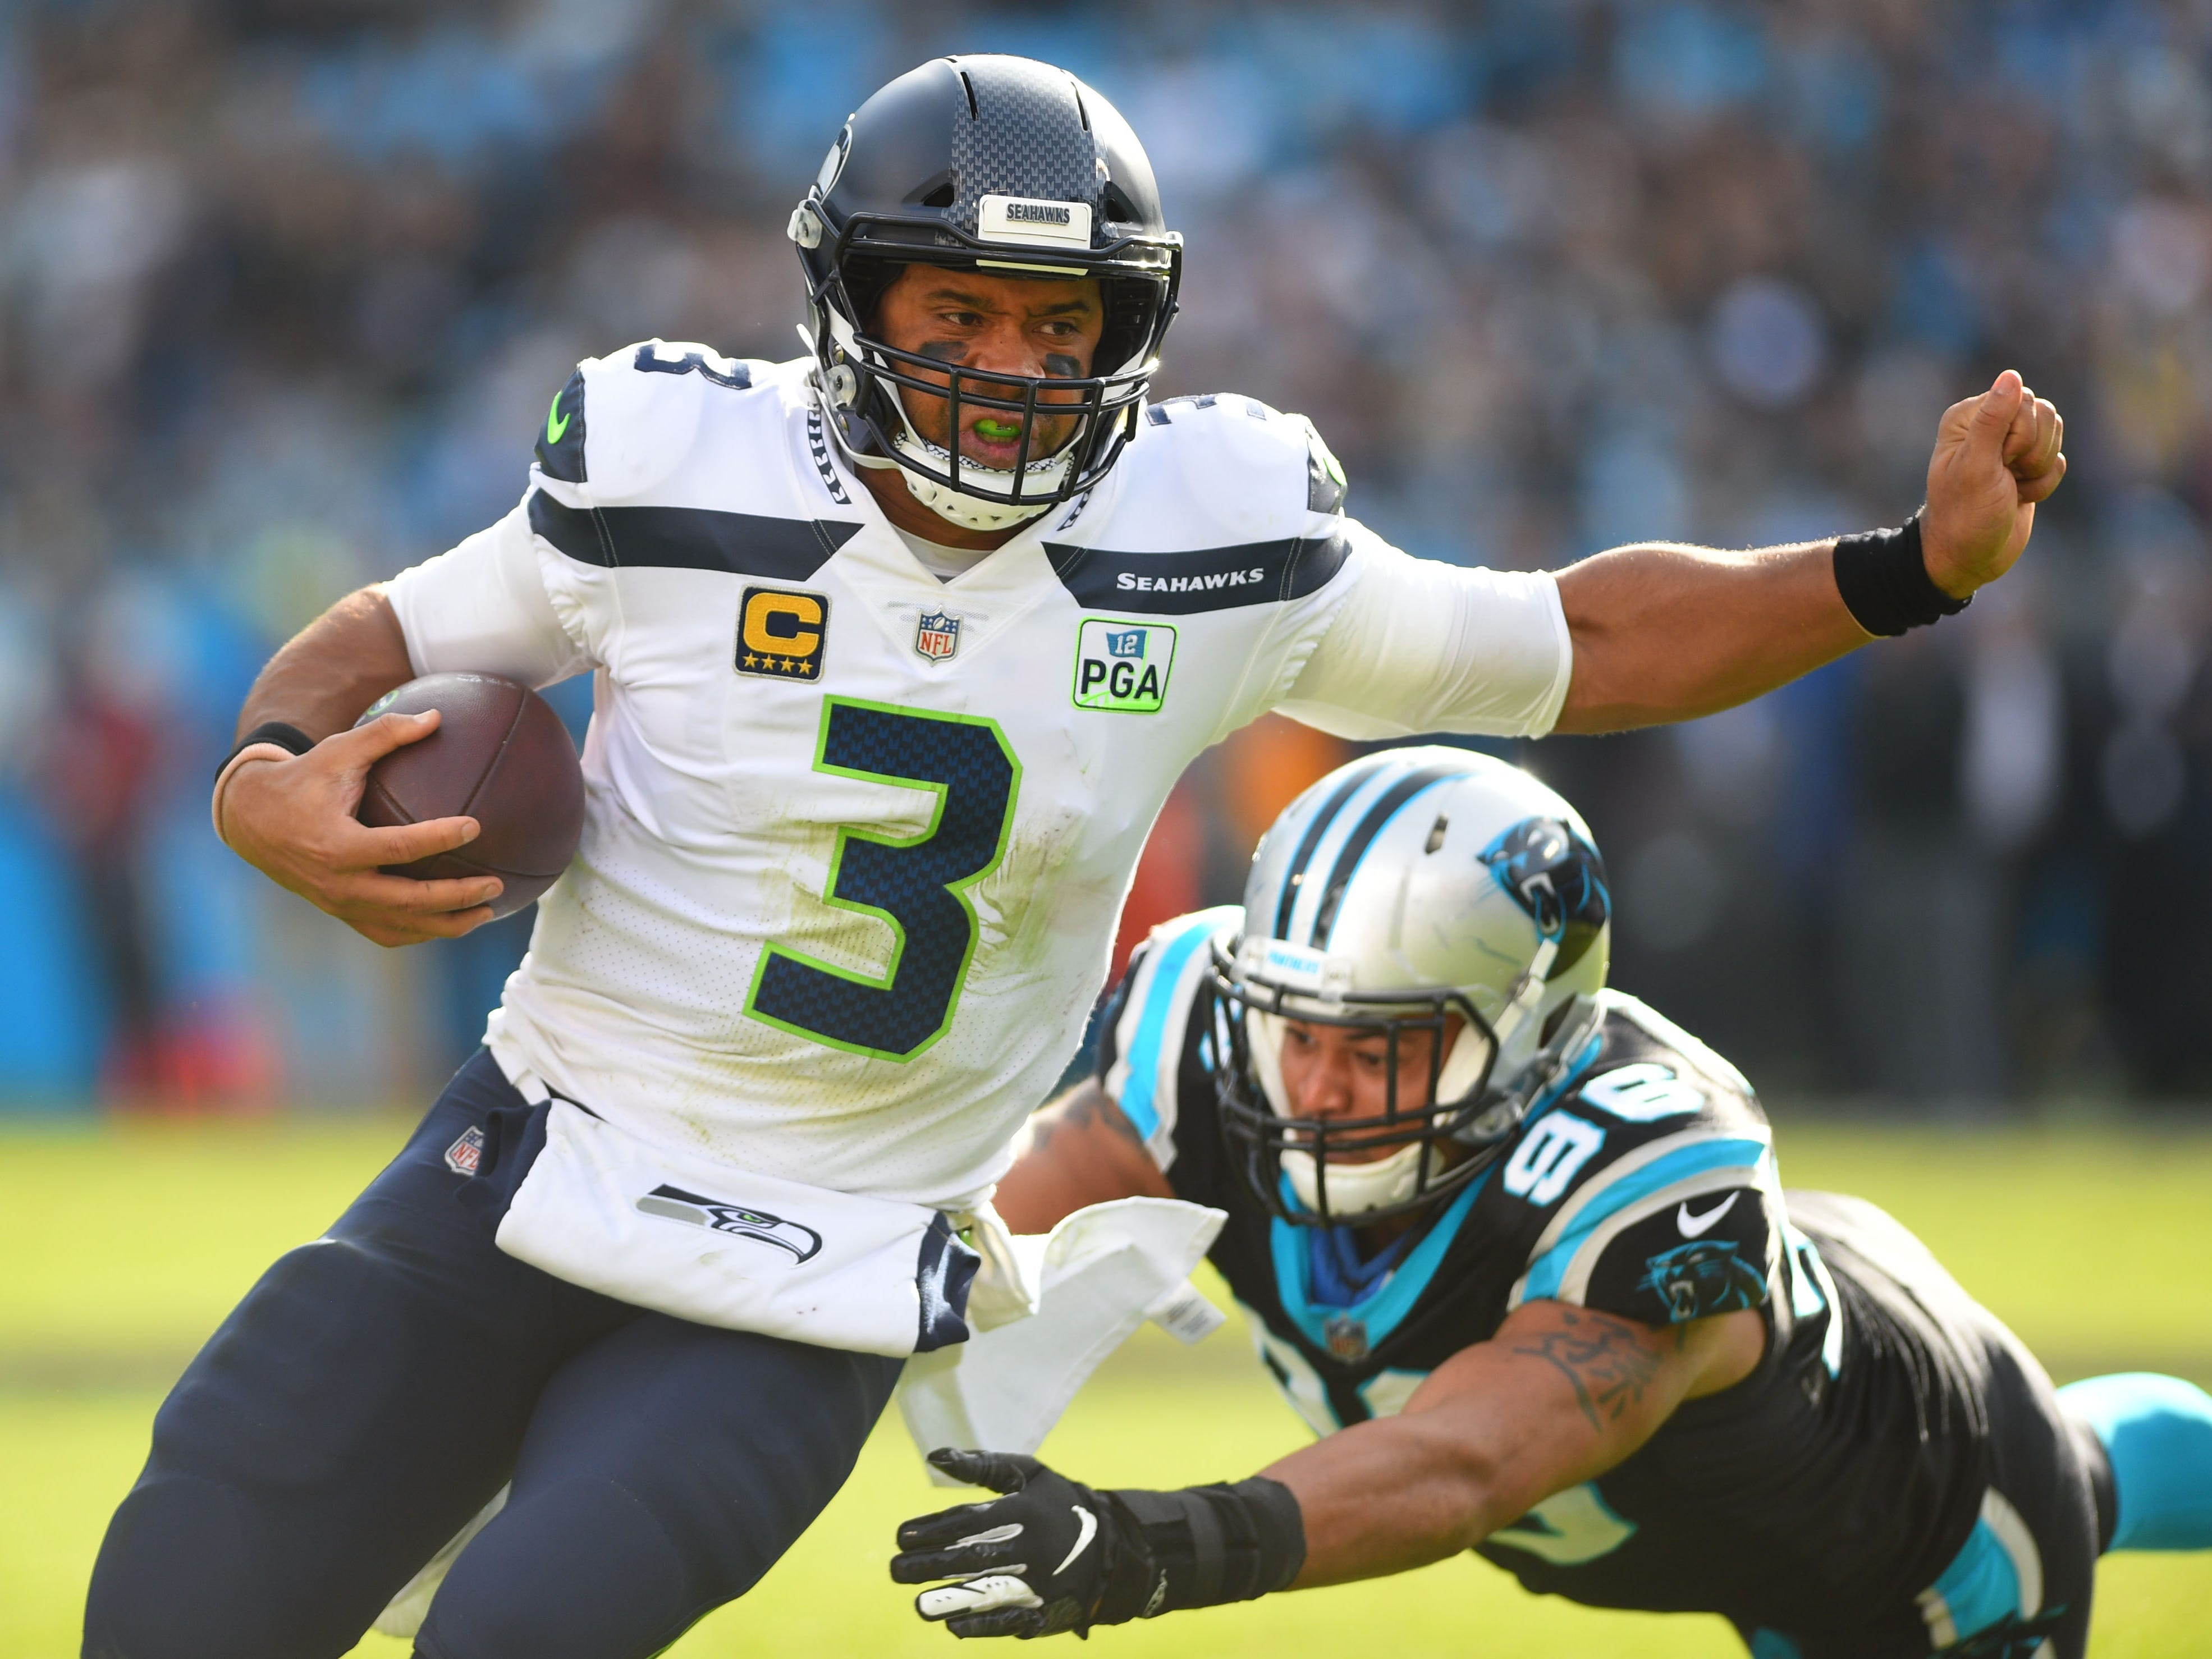 12. Seahawks (13): On a day they couldn't stop a nosebleed or run the ball, you wouldn't think they'd hand Carolina first home loss. Bravo, Russell Wilson.